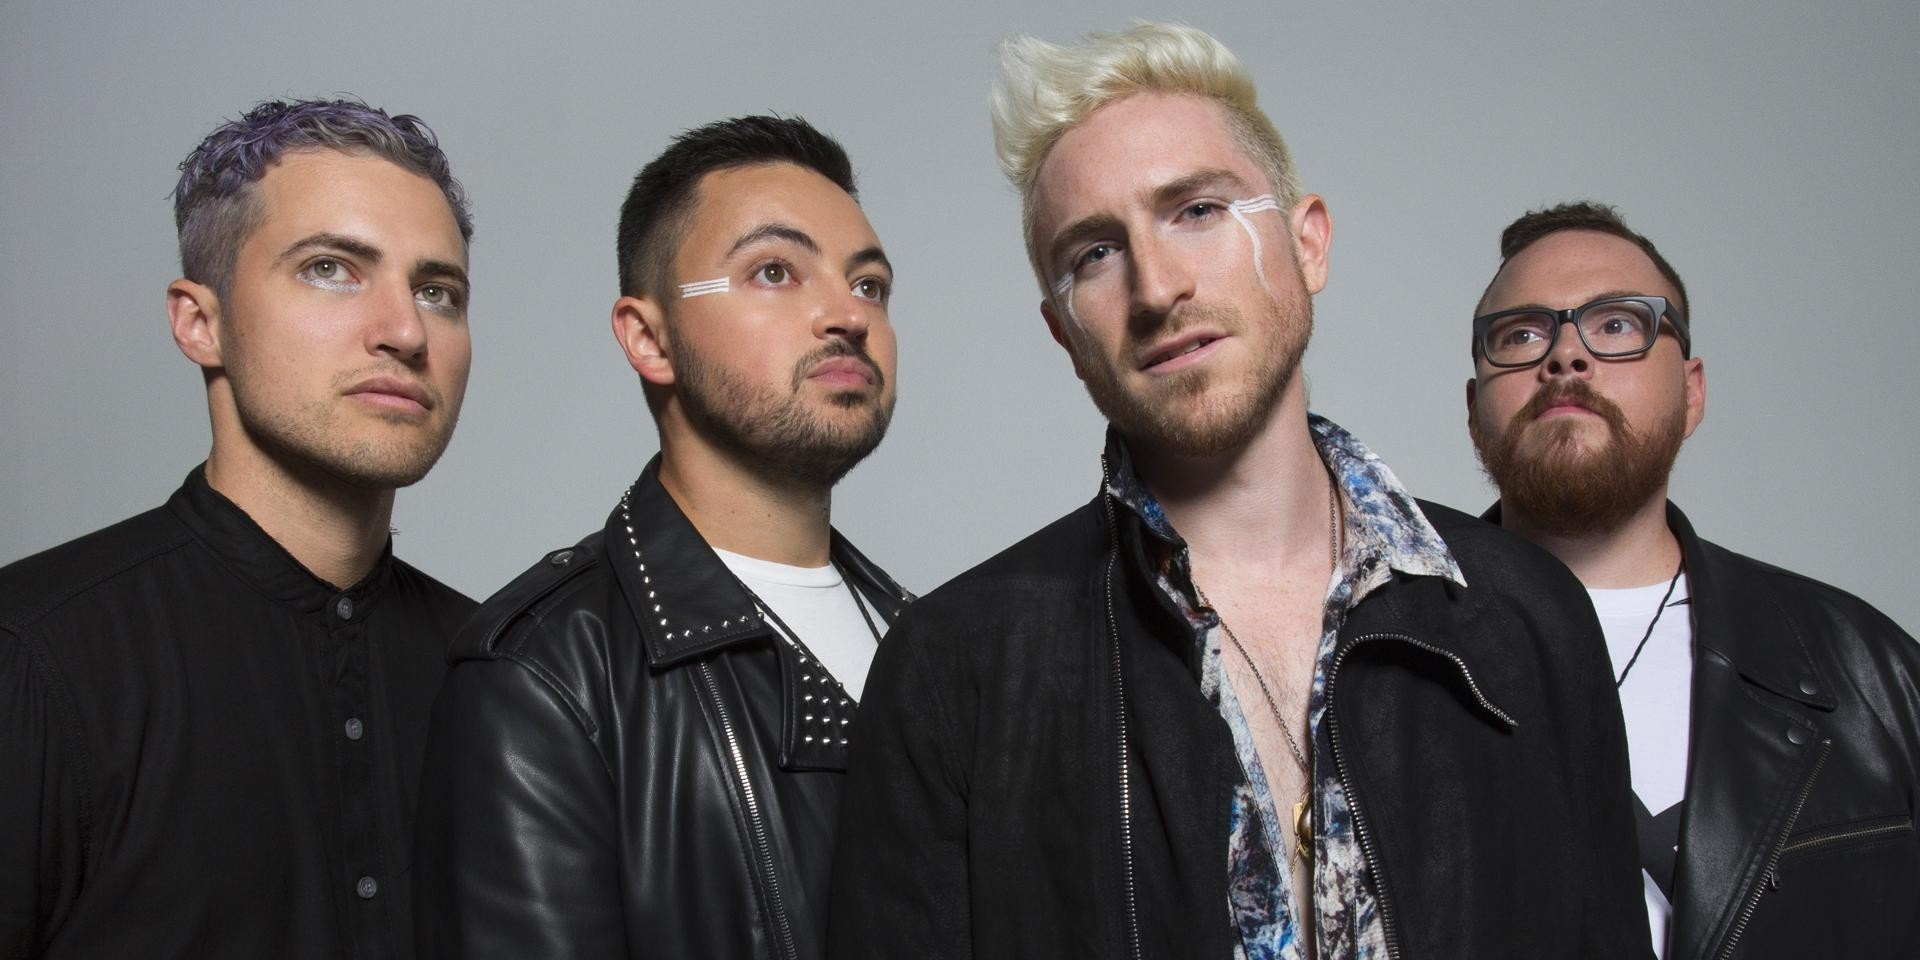 Walk The Moon's show in Singapore cancelled